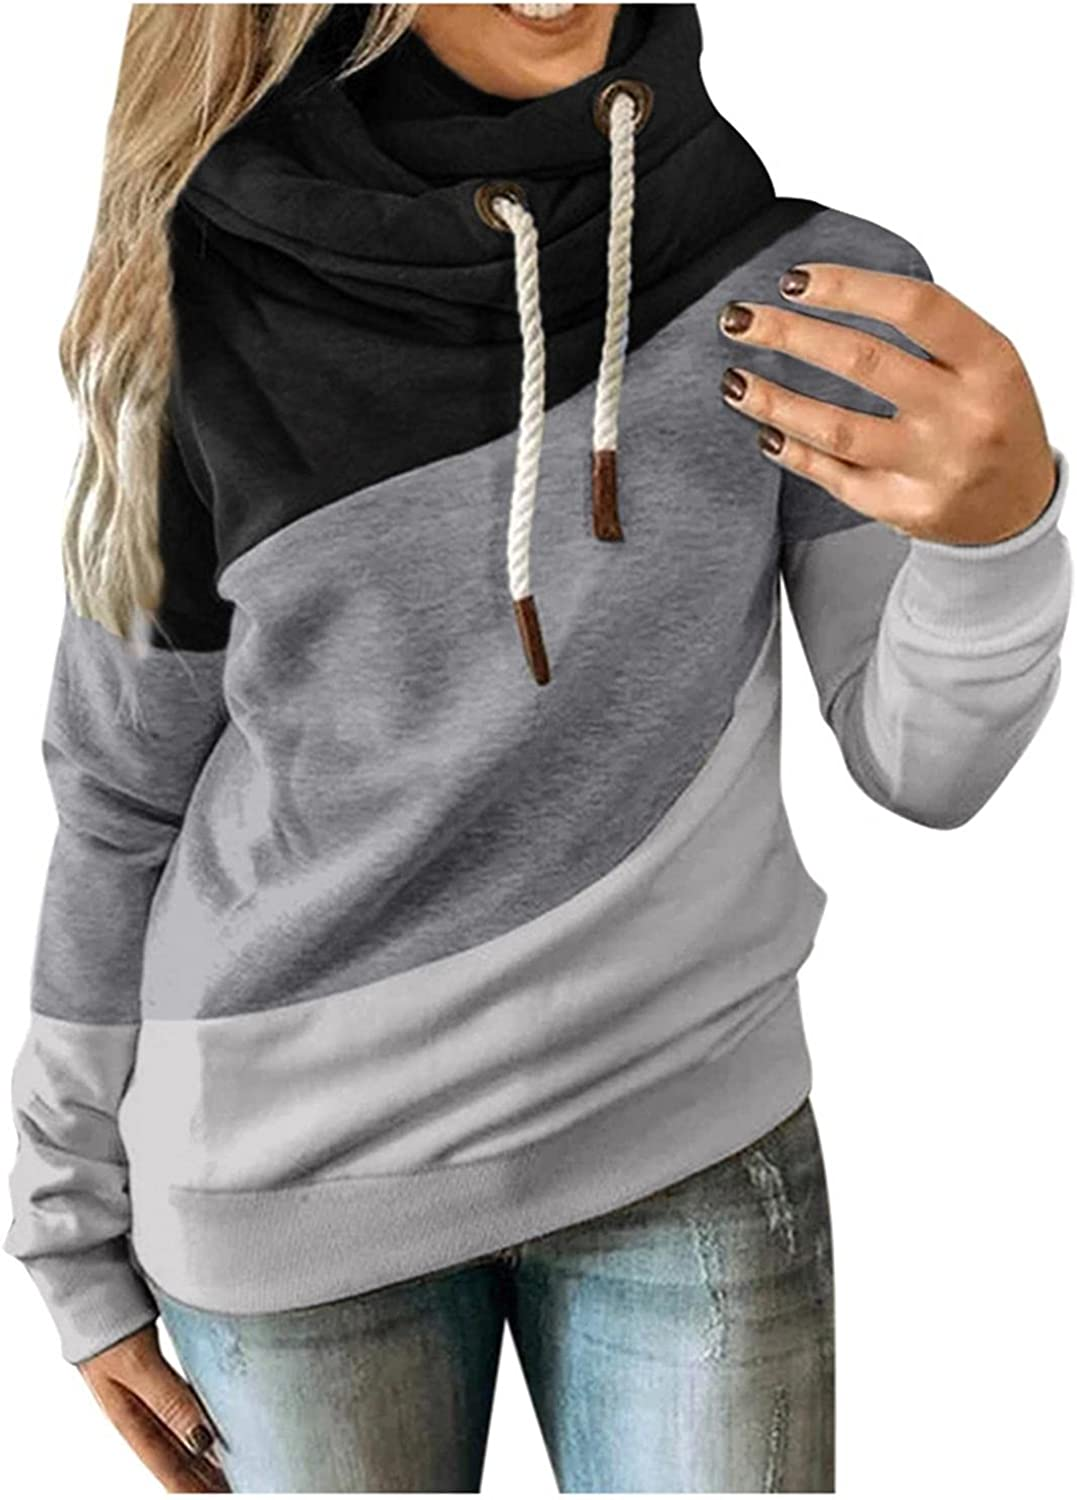 Gibobby Hoodies for Women Pullover Casual Long Sleeve Hooded Casual Oversized Tunic Drawstring Fashion Sweatshirts Tops